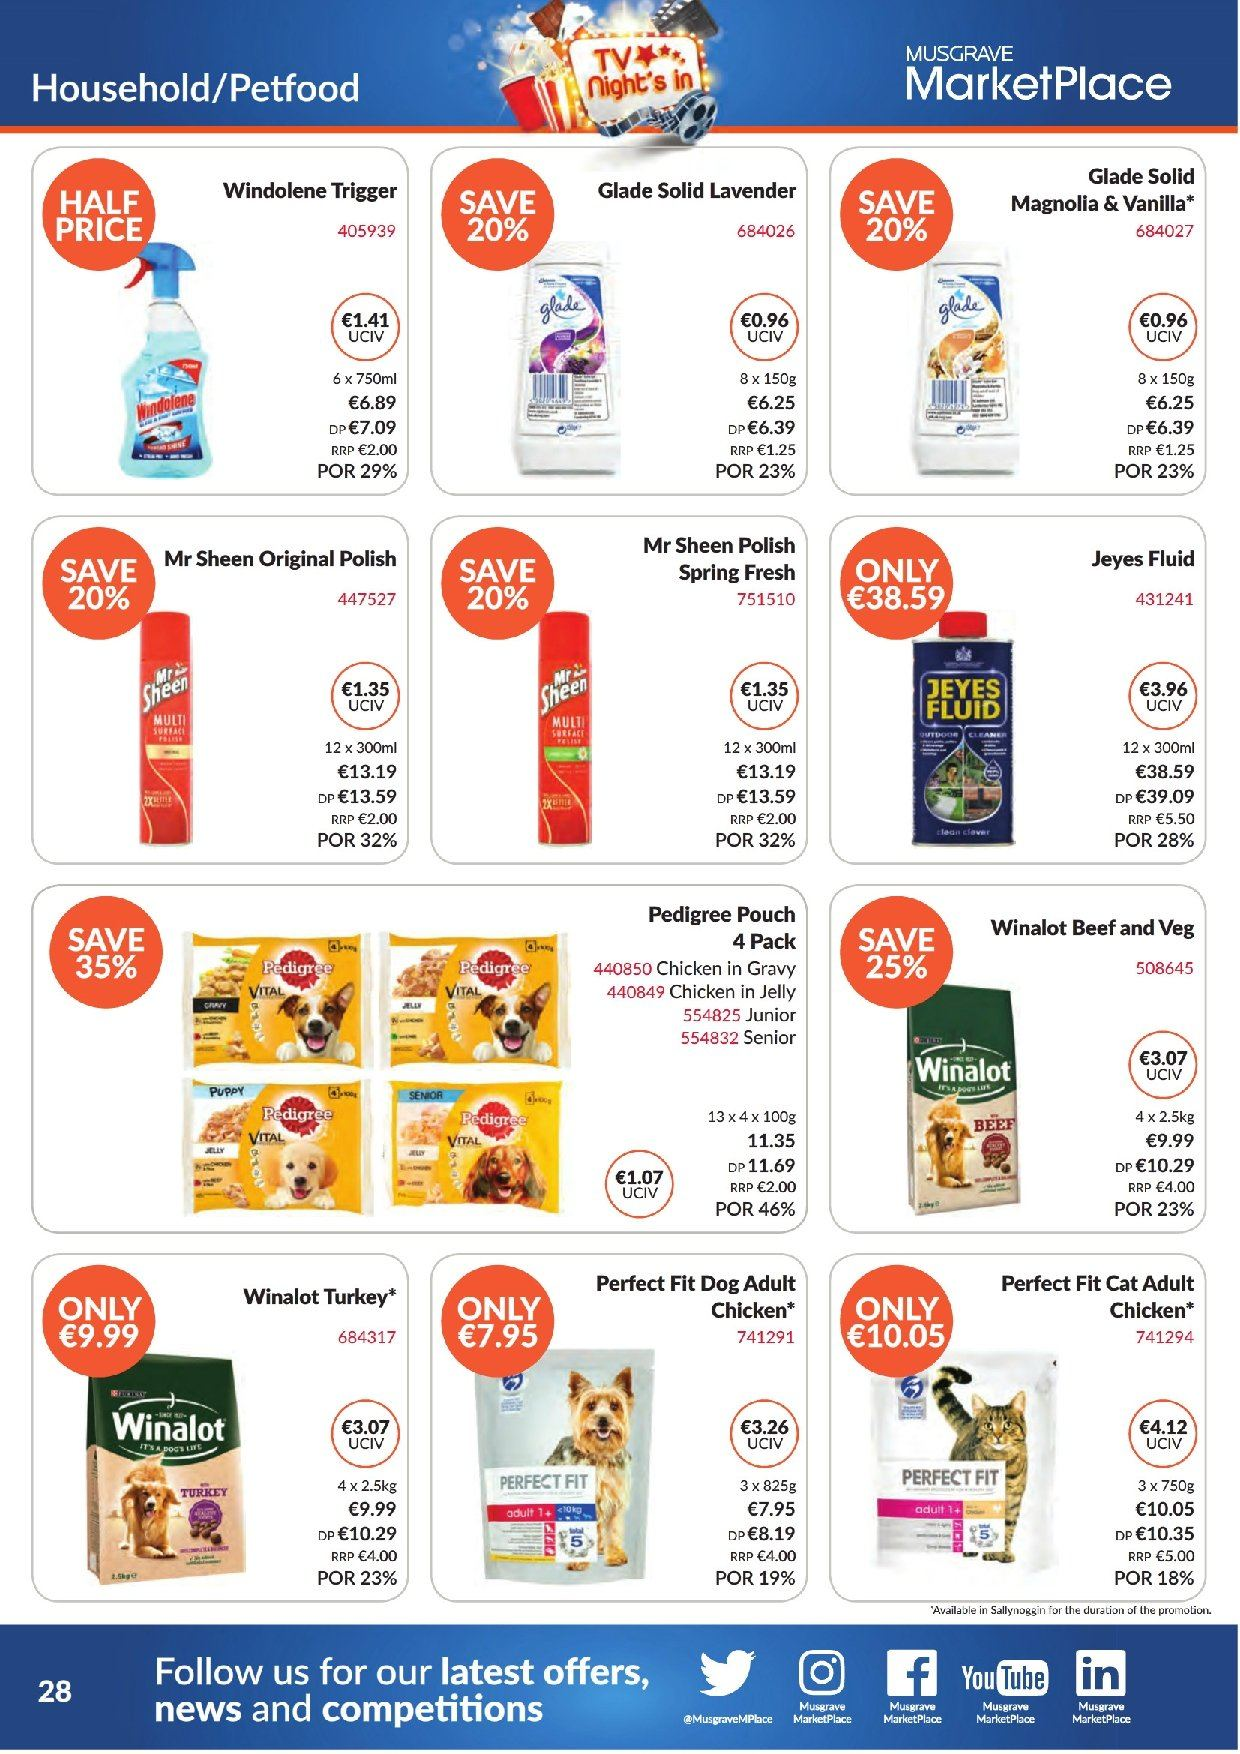 MUSGRAVE Market Place offer  - 2.9.2018 - 29.9.2018 - Sales products - jelly, turkey, chicken, beef meat, solid, TV. Page 28.